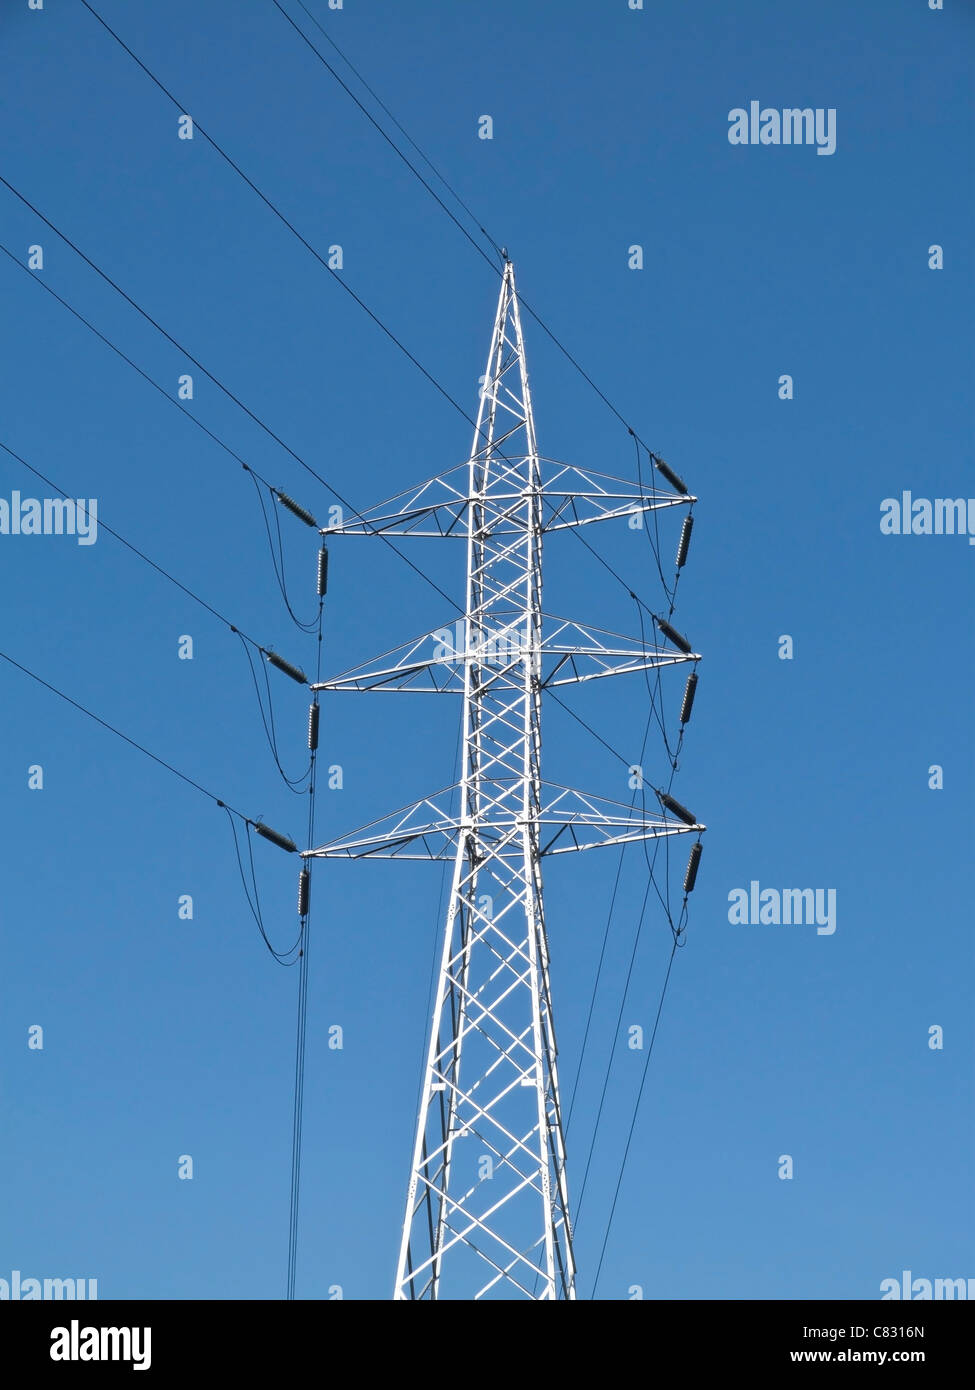 Power Transmission Tower High Resolution Stock Photography And Images Alamy